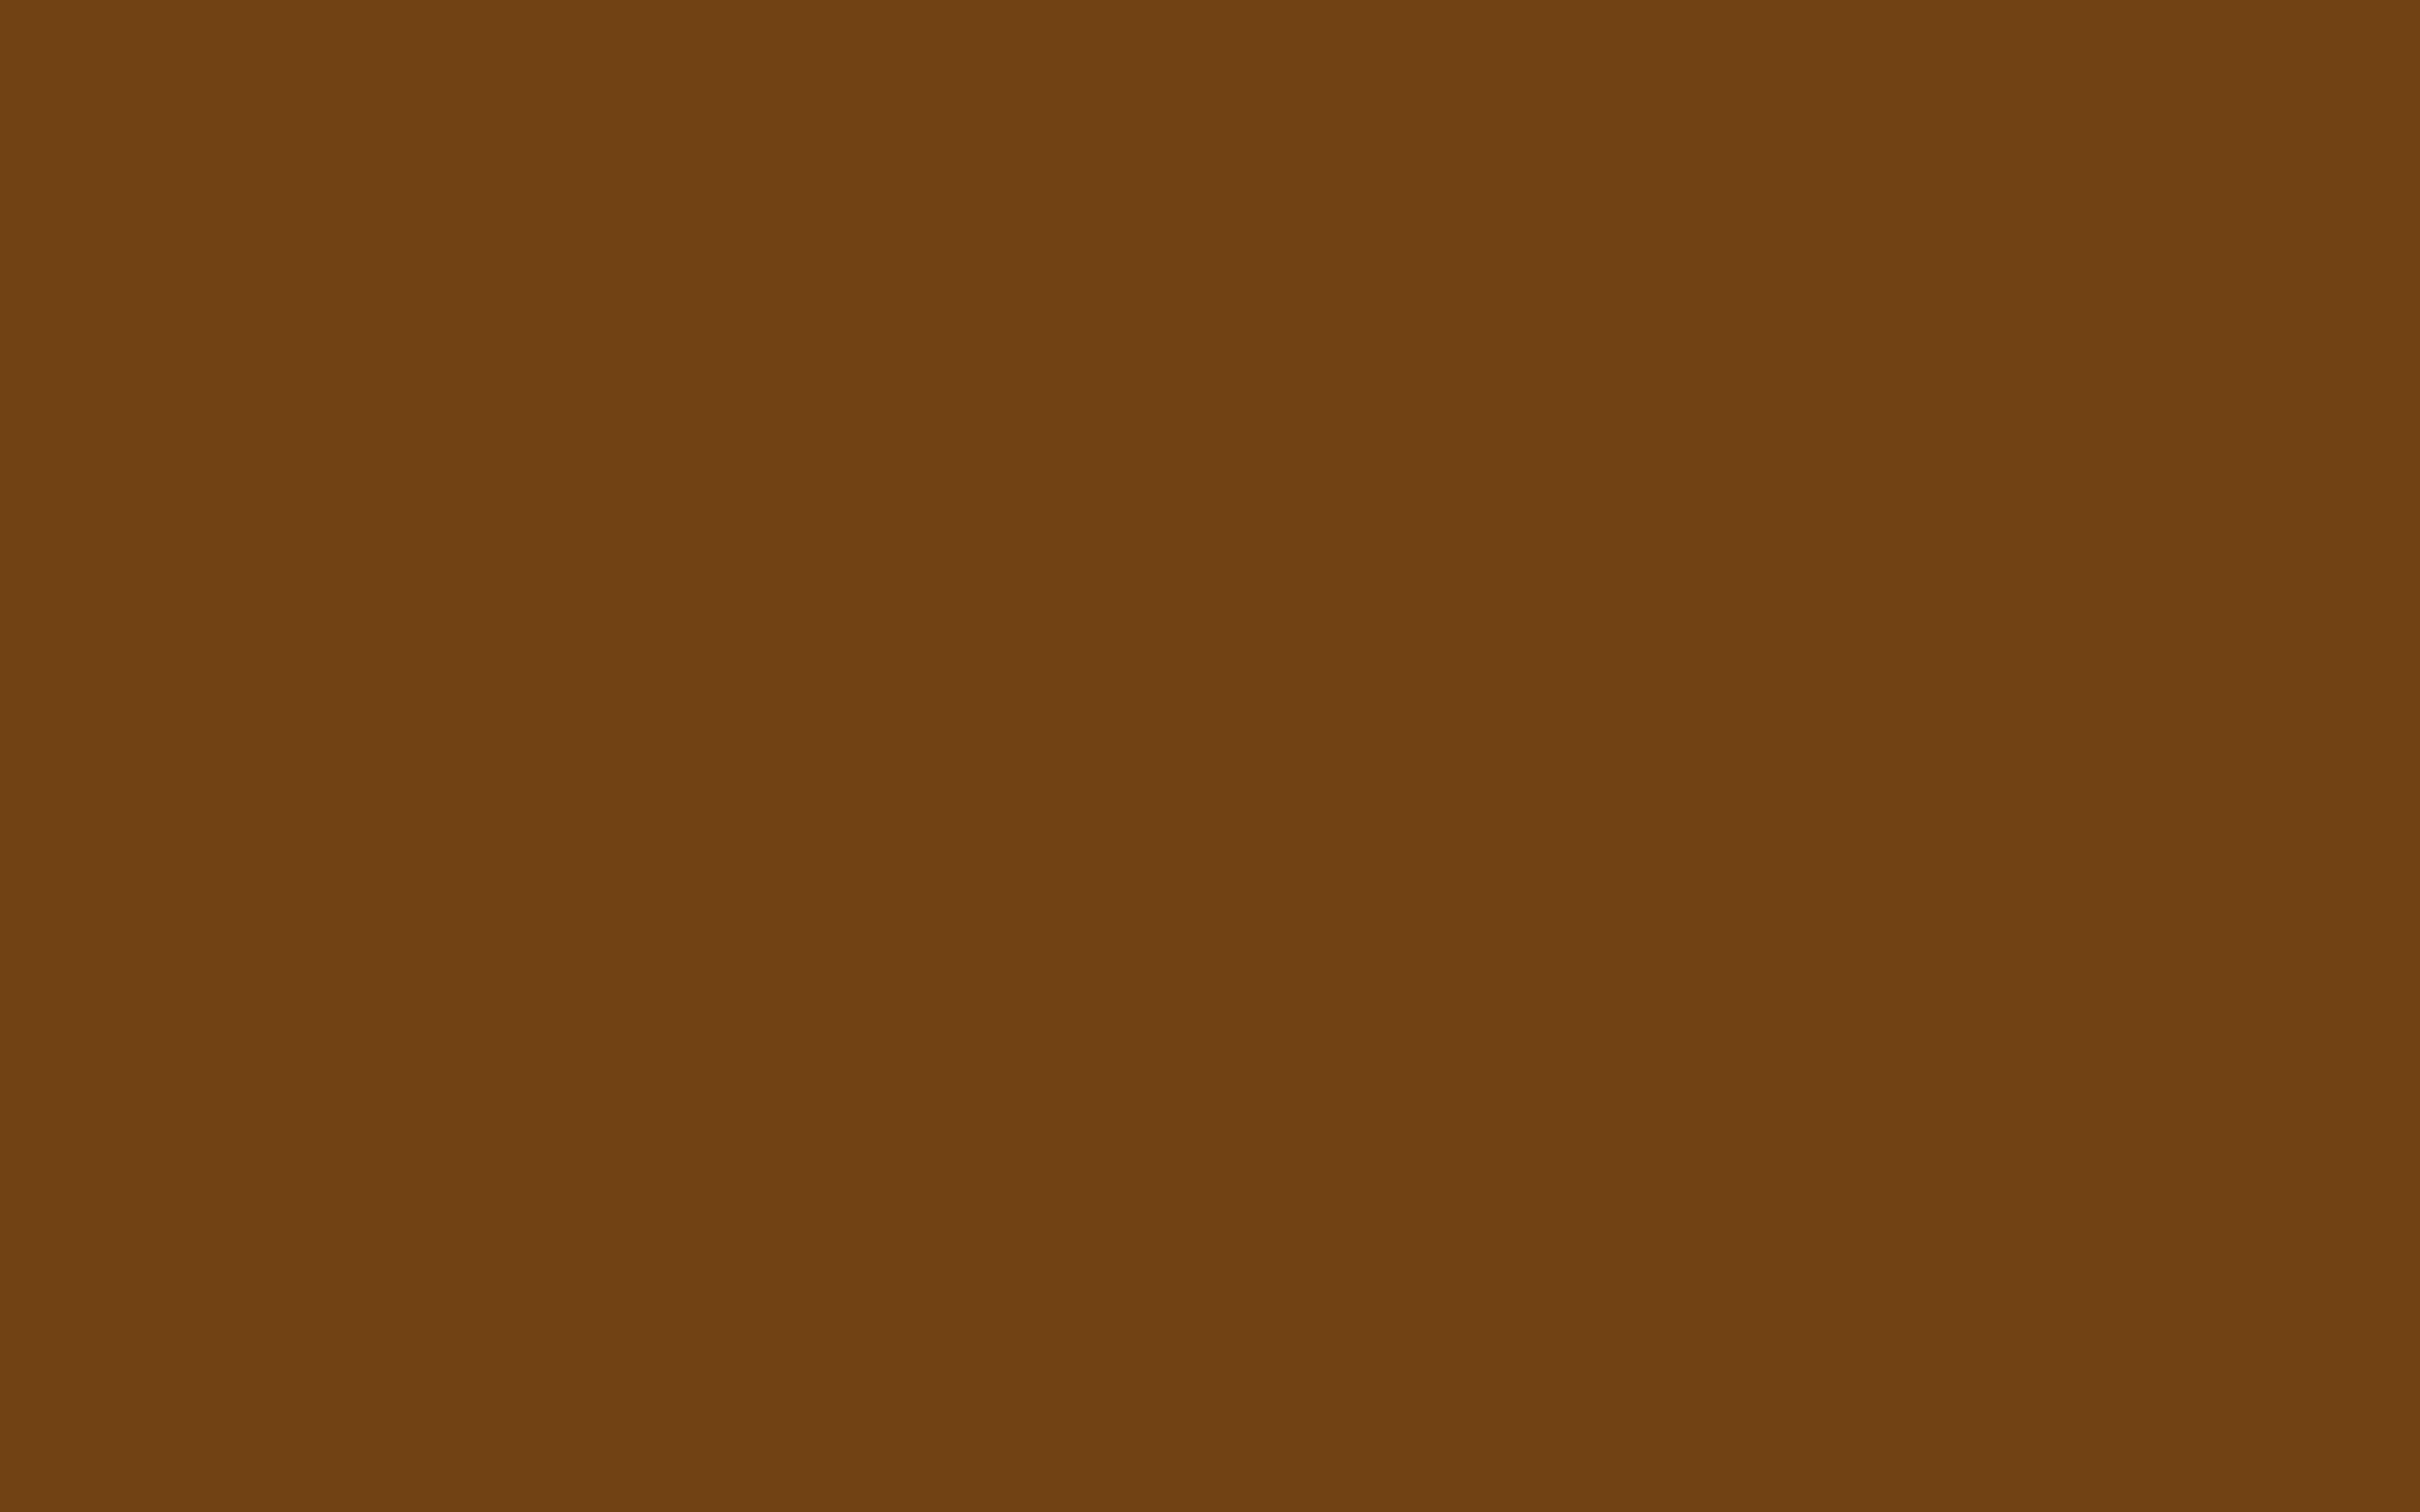 2560x1600 Sepia Solid Color Background